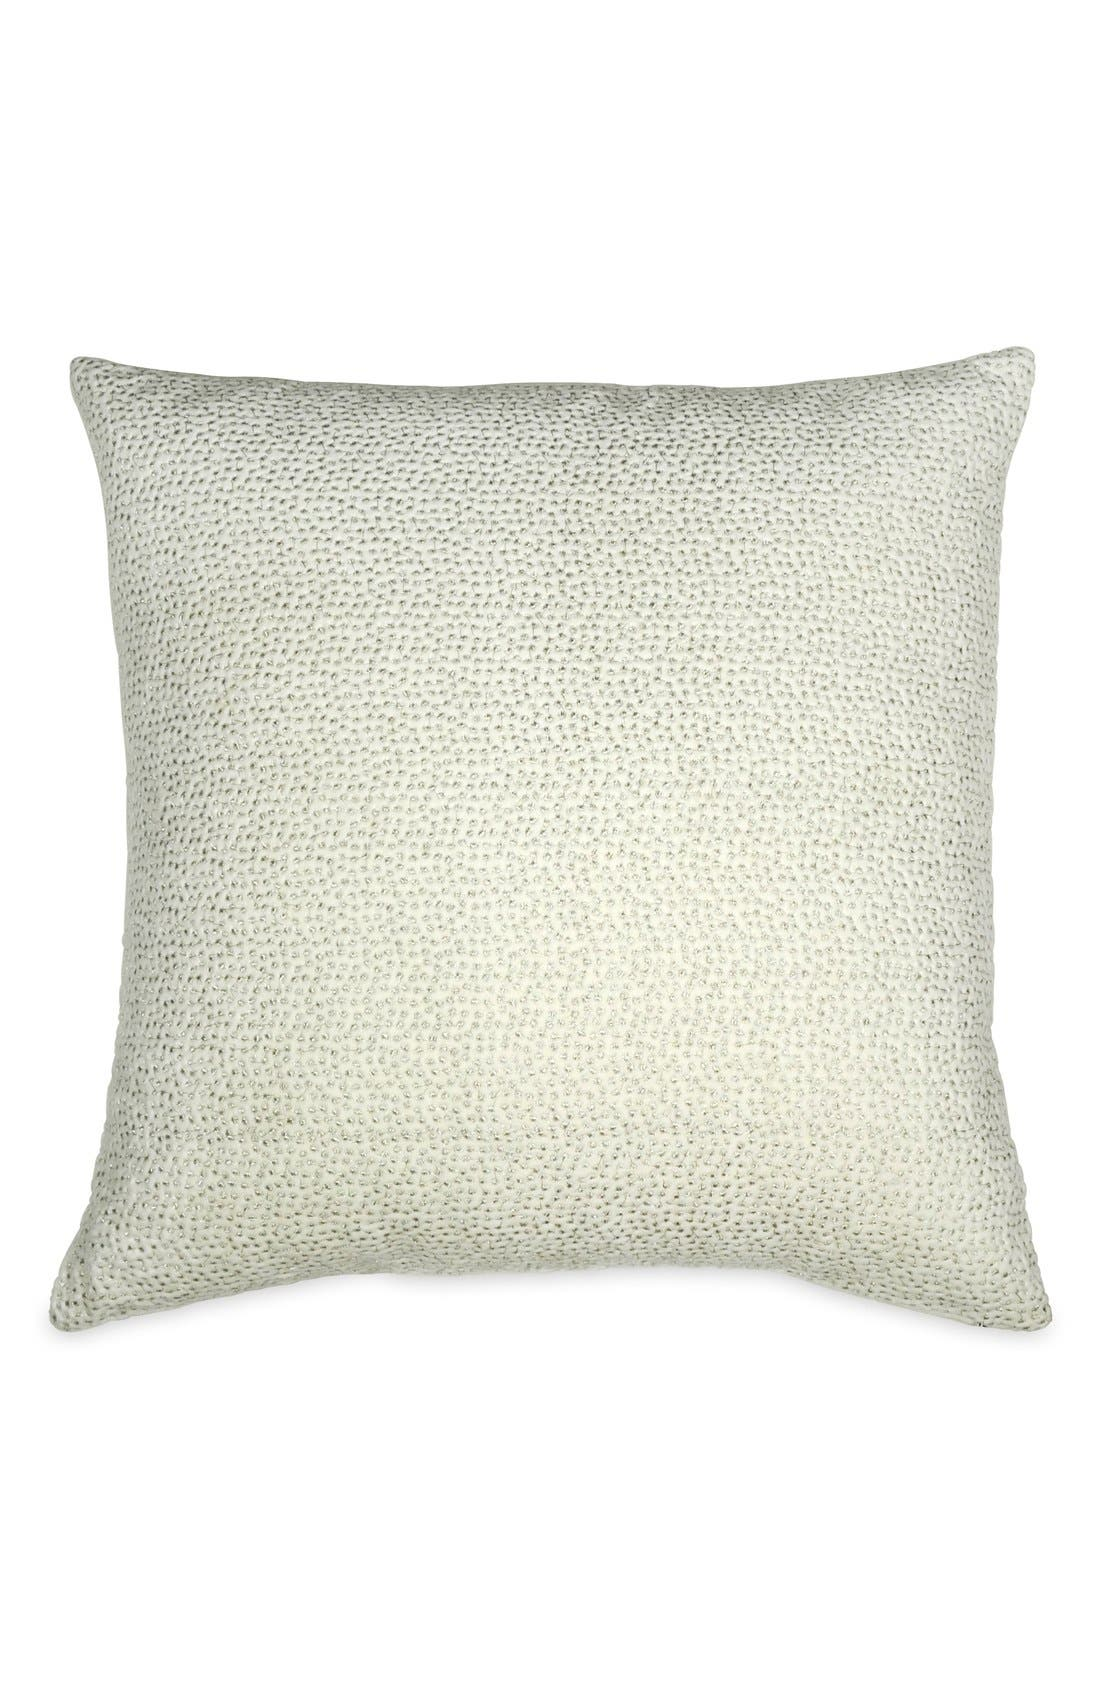 Alternate Image 1 Selected - Donna Karan Collection 'Exhale' Pillow